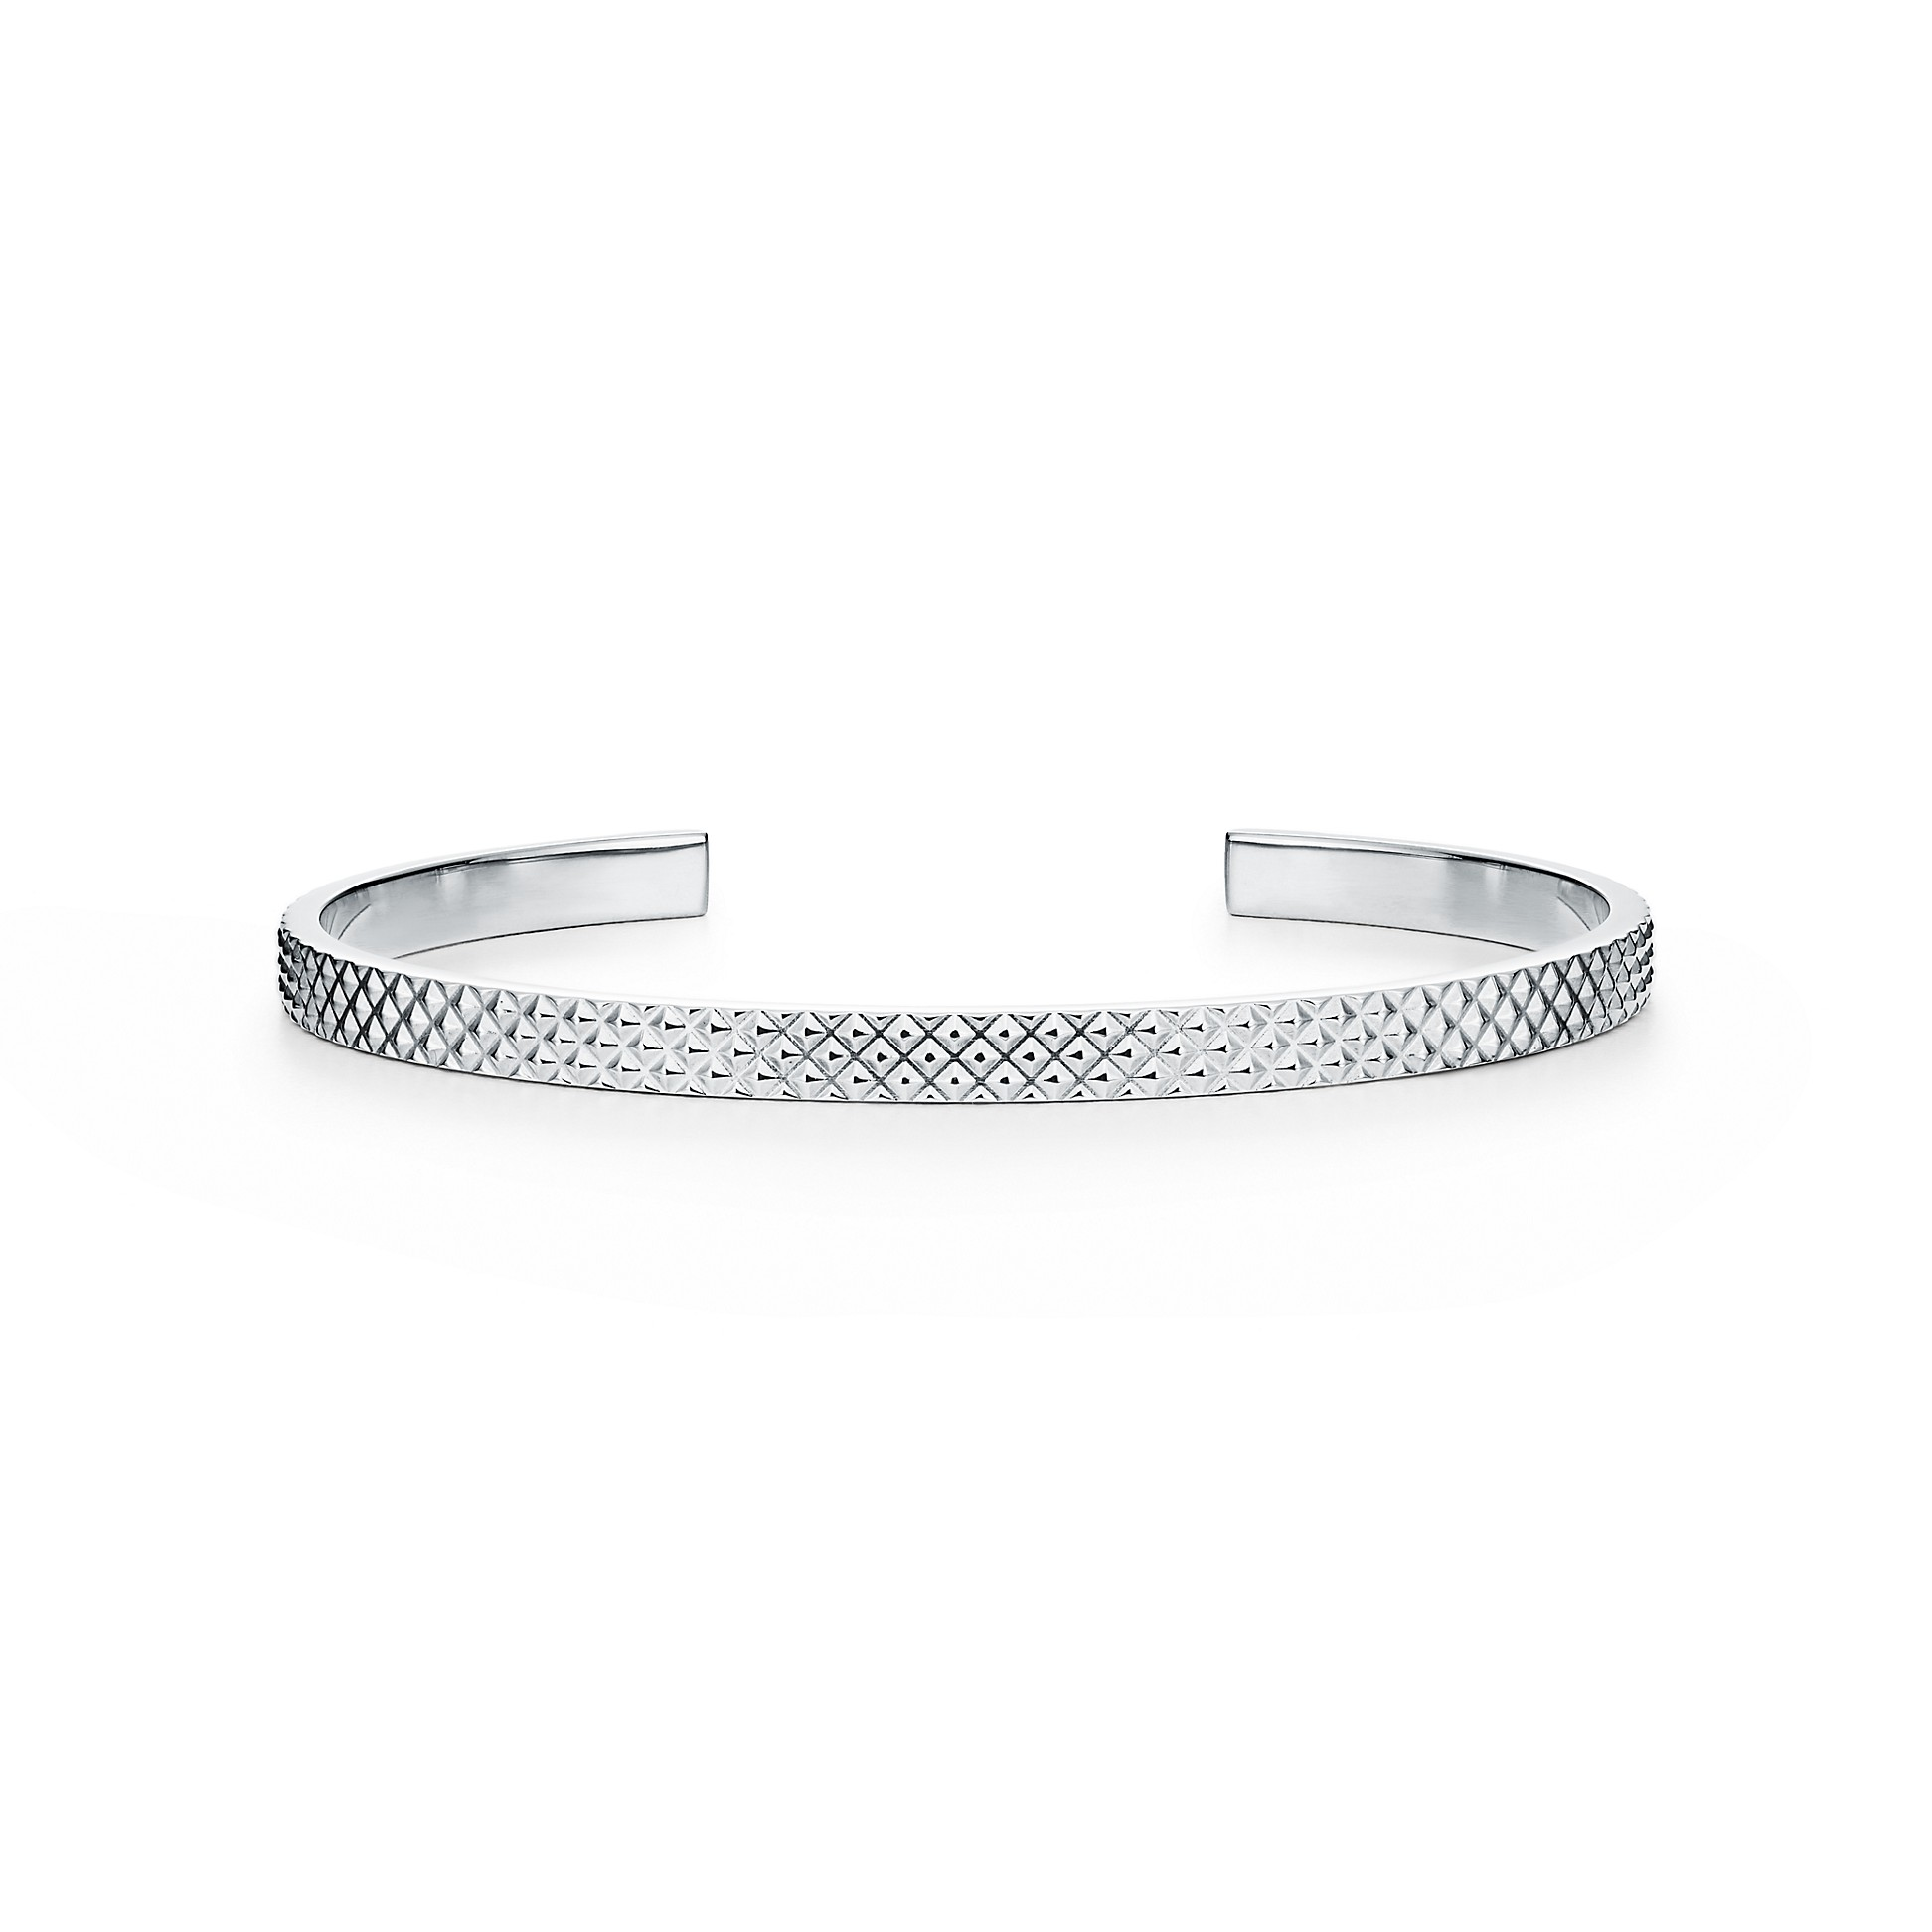 Diamond Point 												  												  											 										 									 									Cuff by Diamond Point